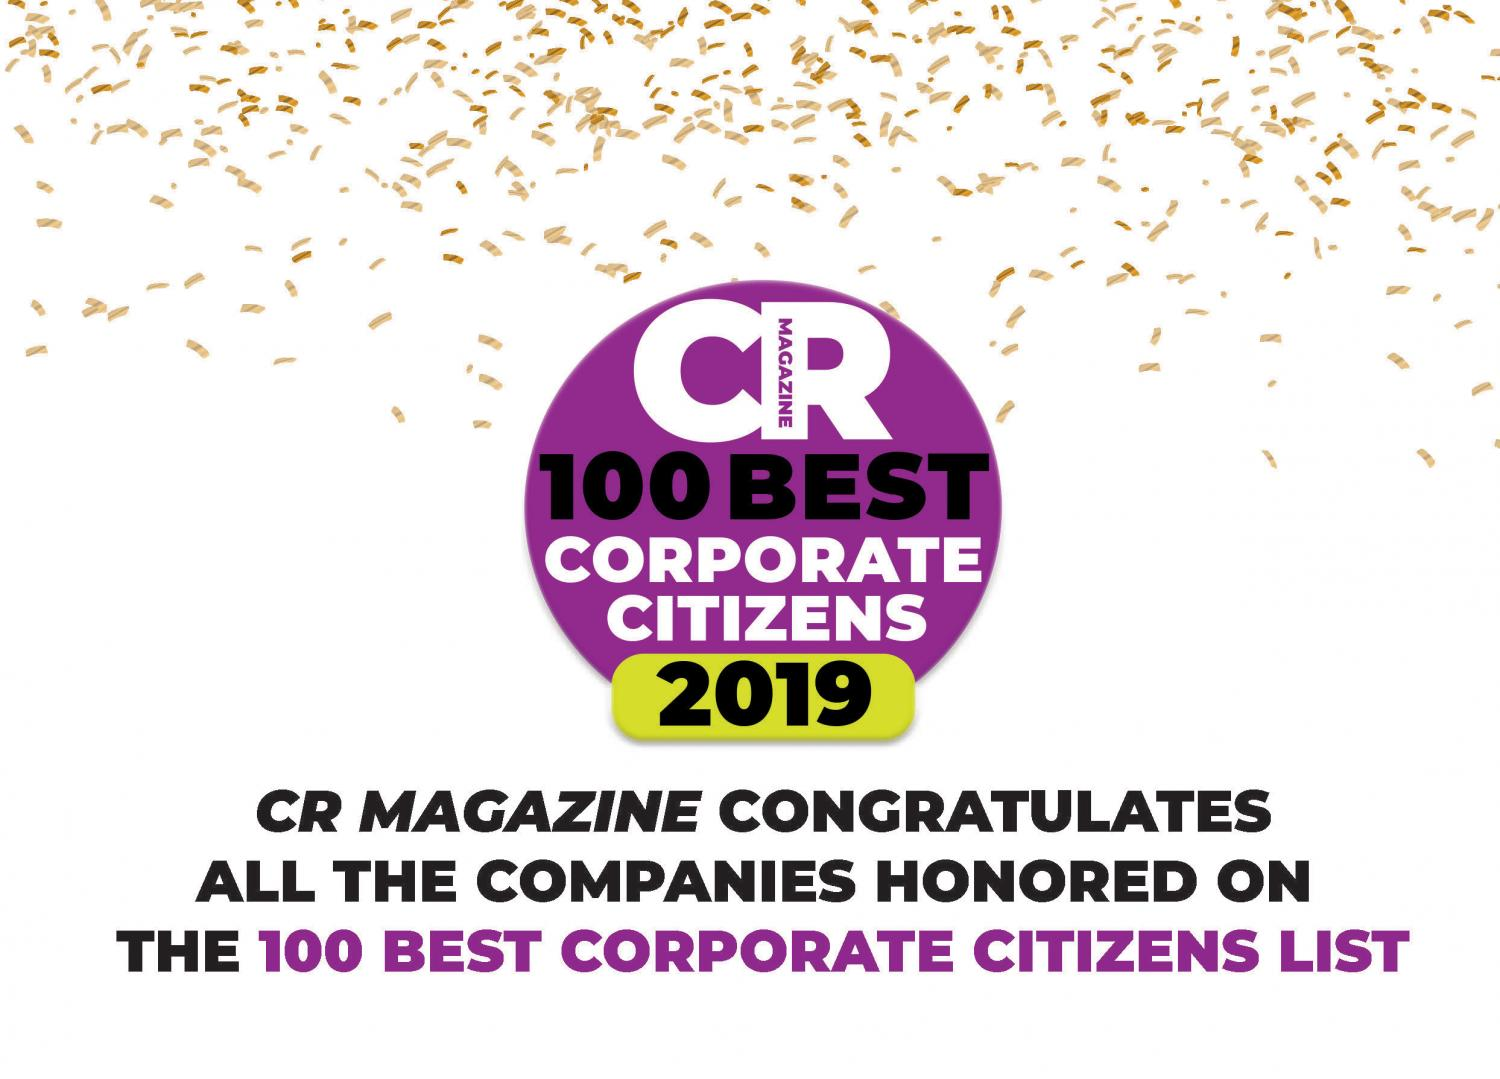 CR Magazine 100 Best Corporate Citizens of 2019